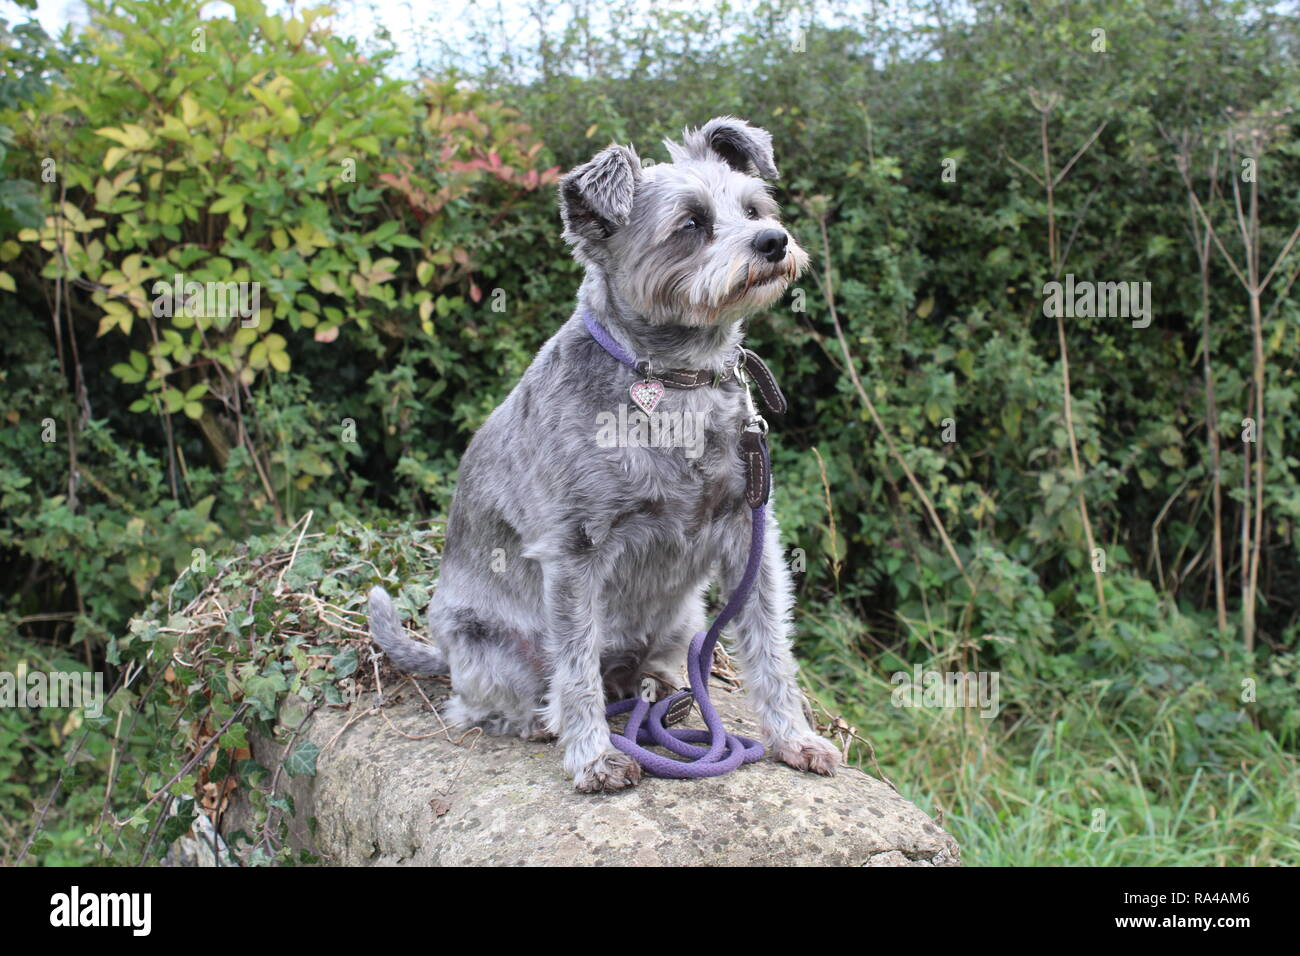 Schnoodle (cross between a Miniature Schnauzer and a Poodle) with floppy ears called Tilly having a rest on a walk near Harton, North Yorkshire - Stock Image